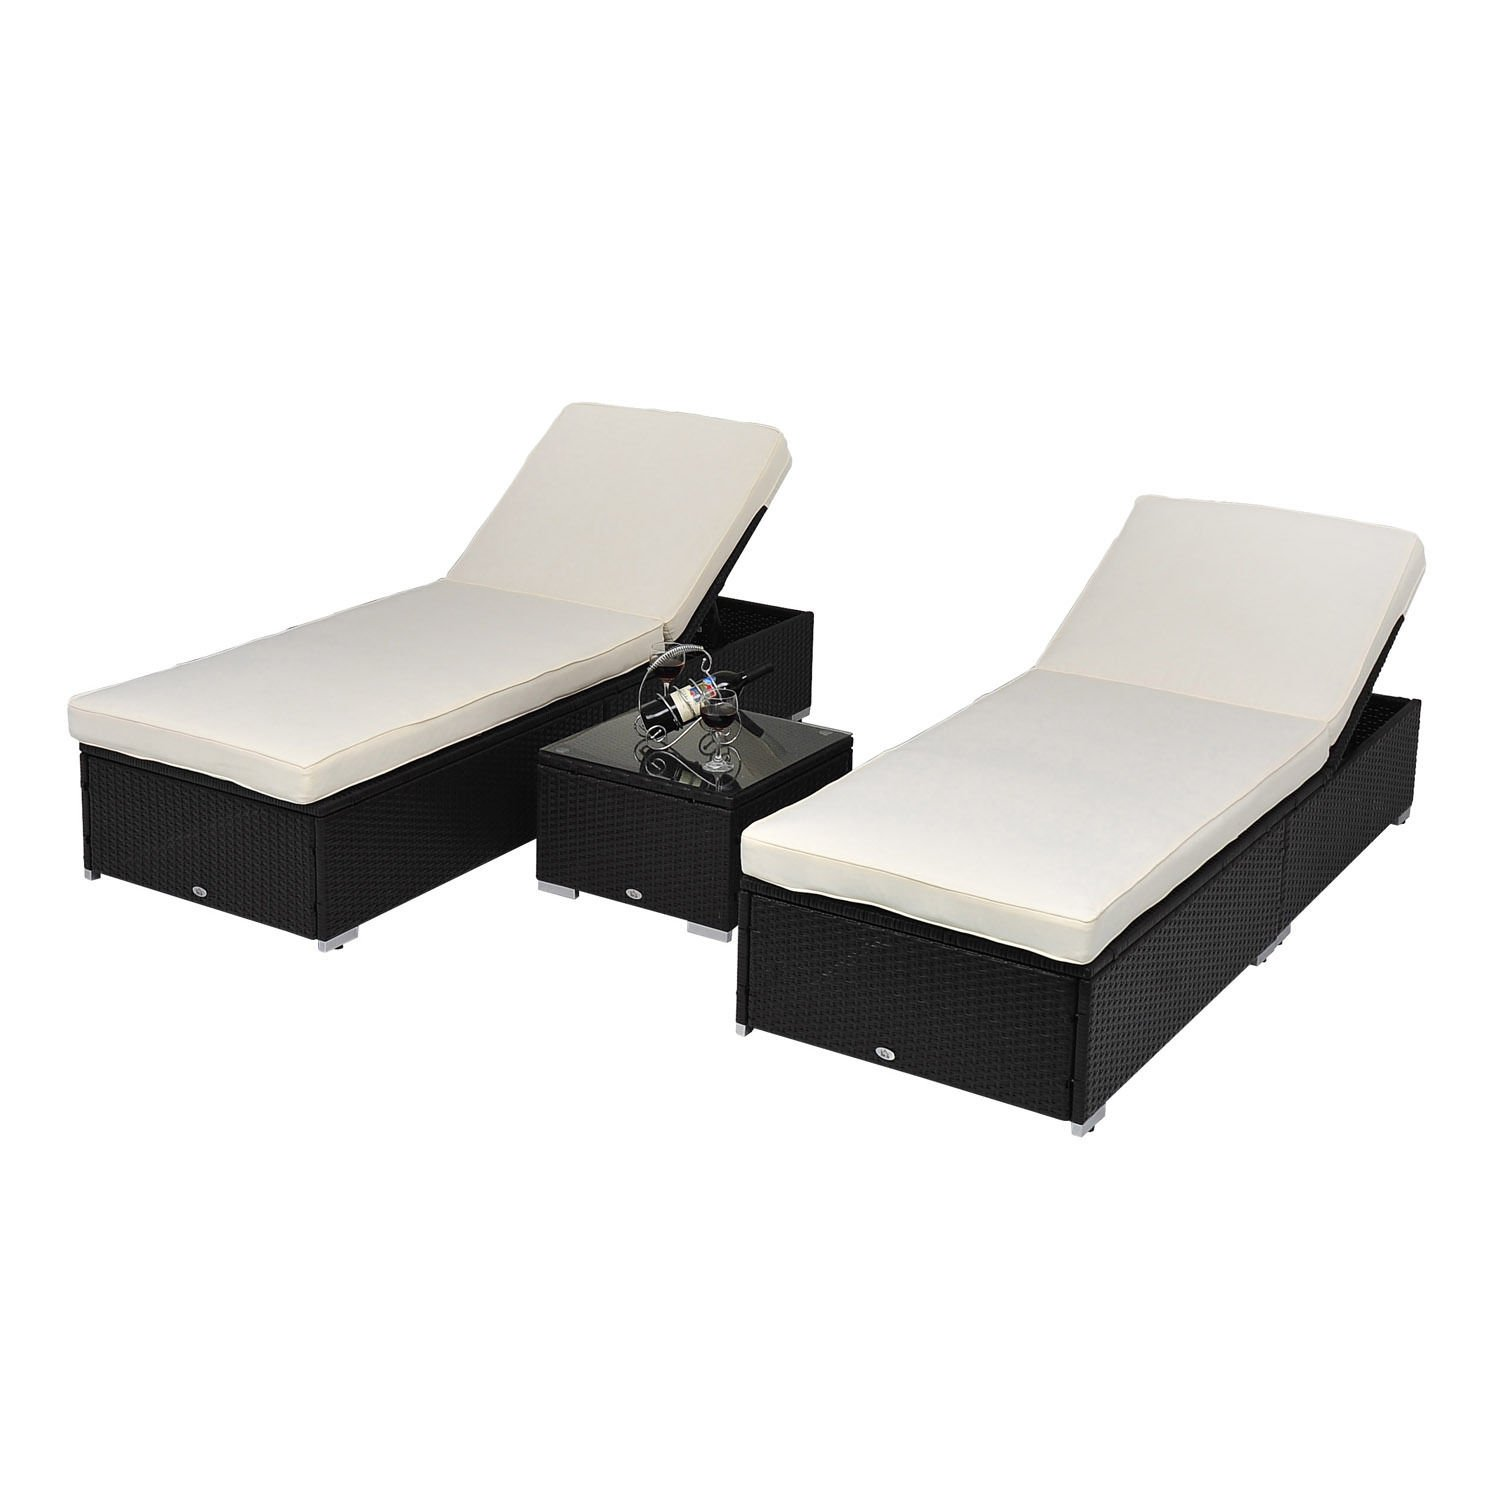 Chaise Lounge Outdoor.Outsunny 3 Piece Rattan Wicker Chaise Lounge Chair Set W Side Table